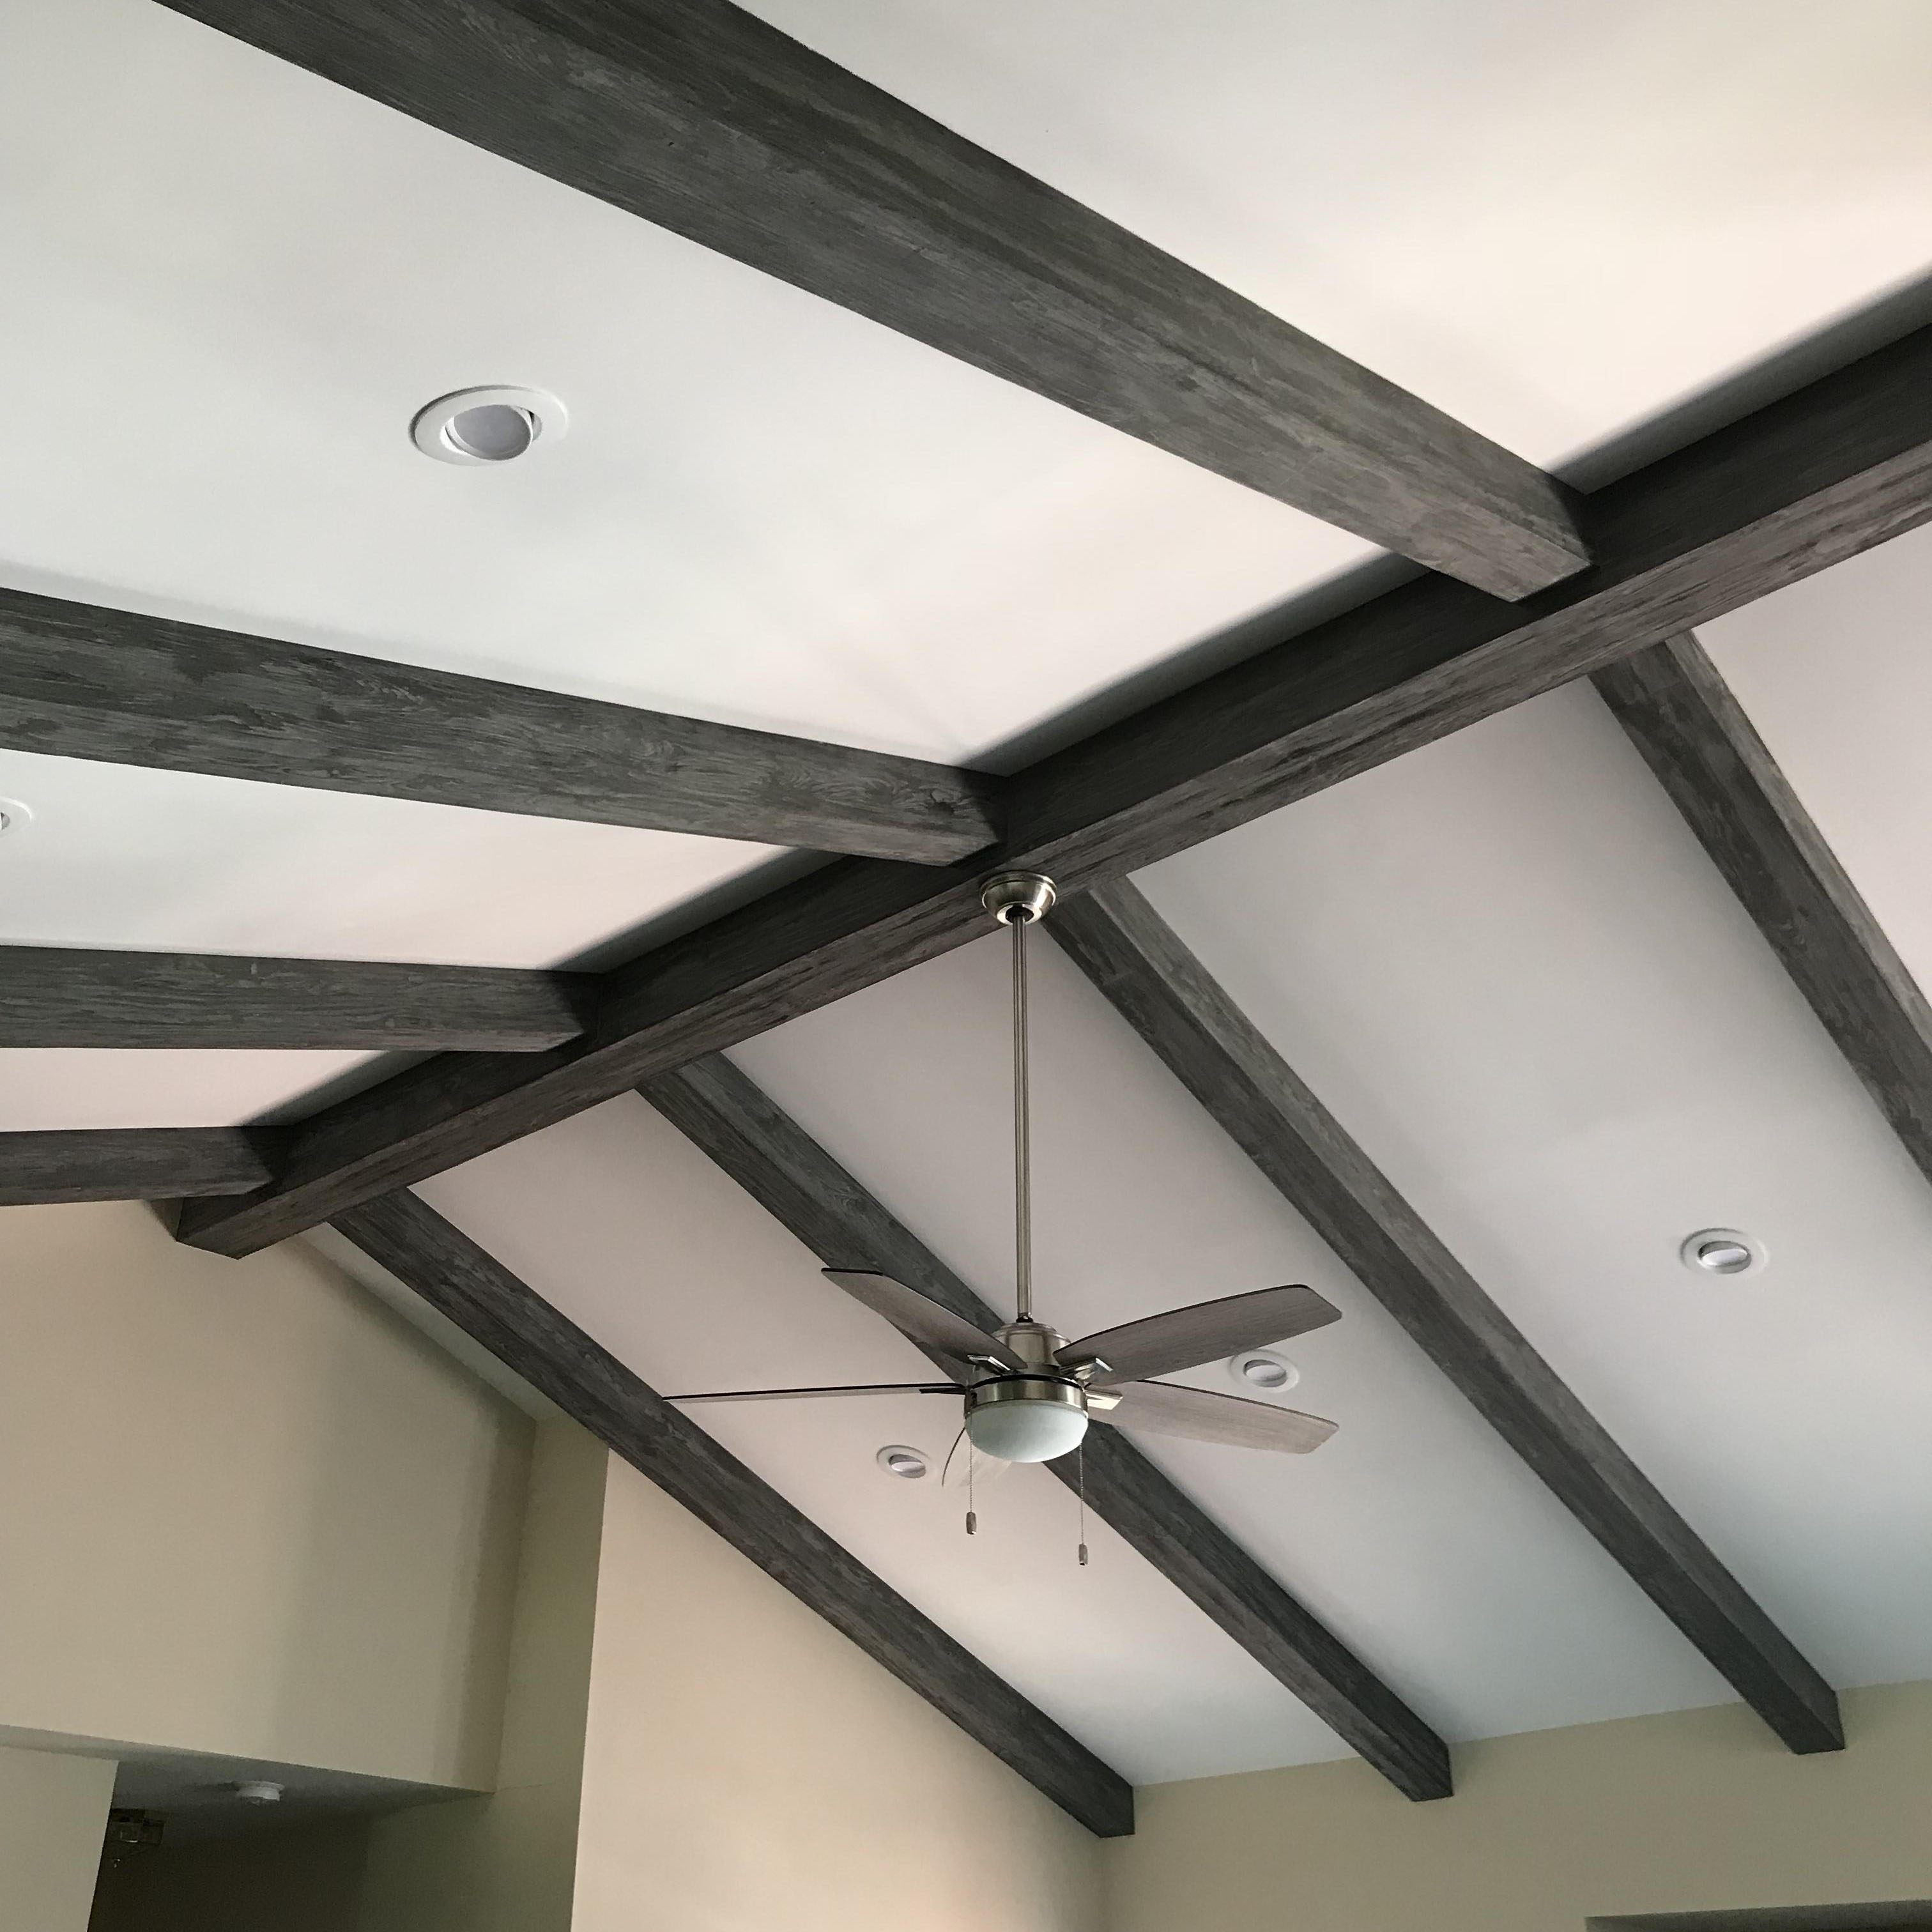 Cathedral / Peaked Ceiling Installation